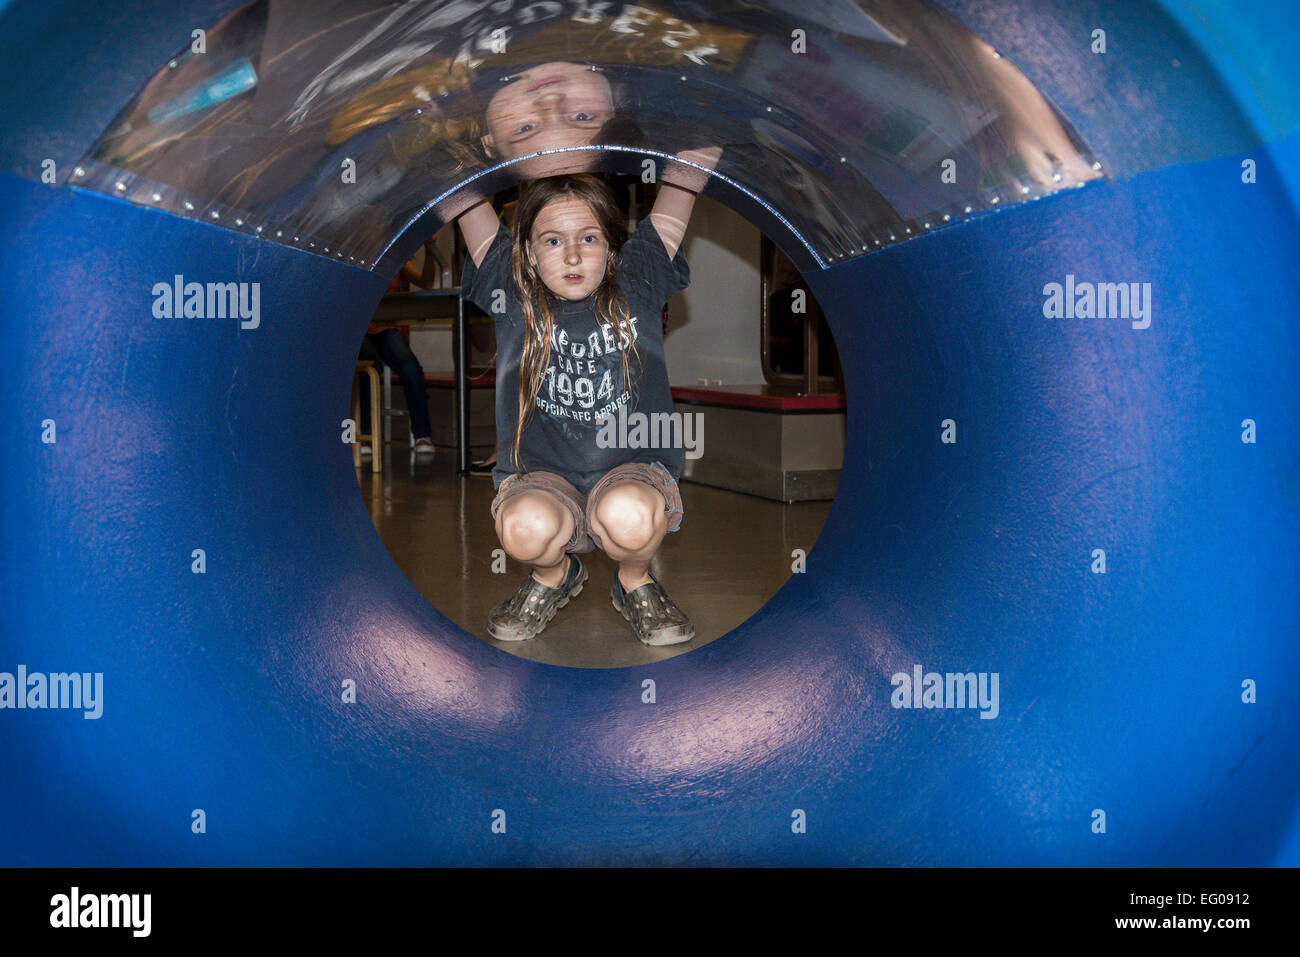 Boy interacting with display at Telus, World of Science, - Stock Image